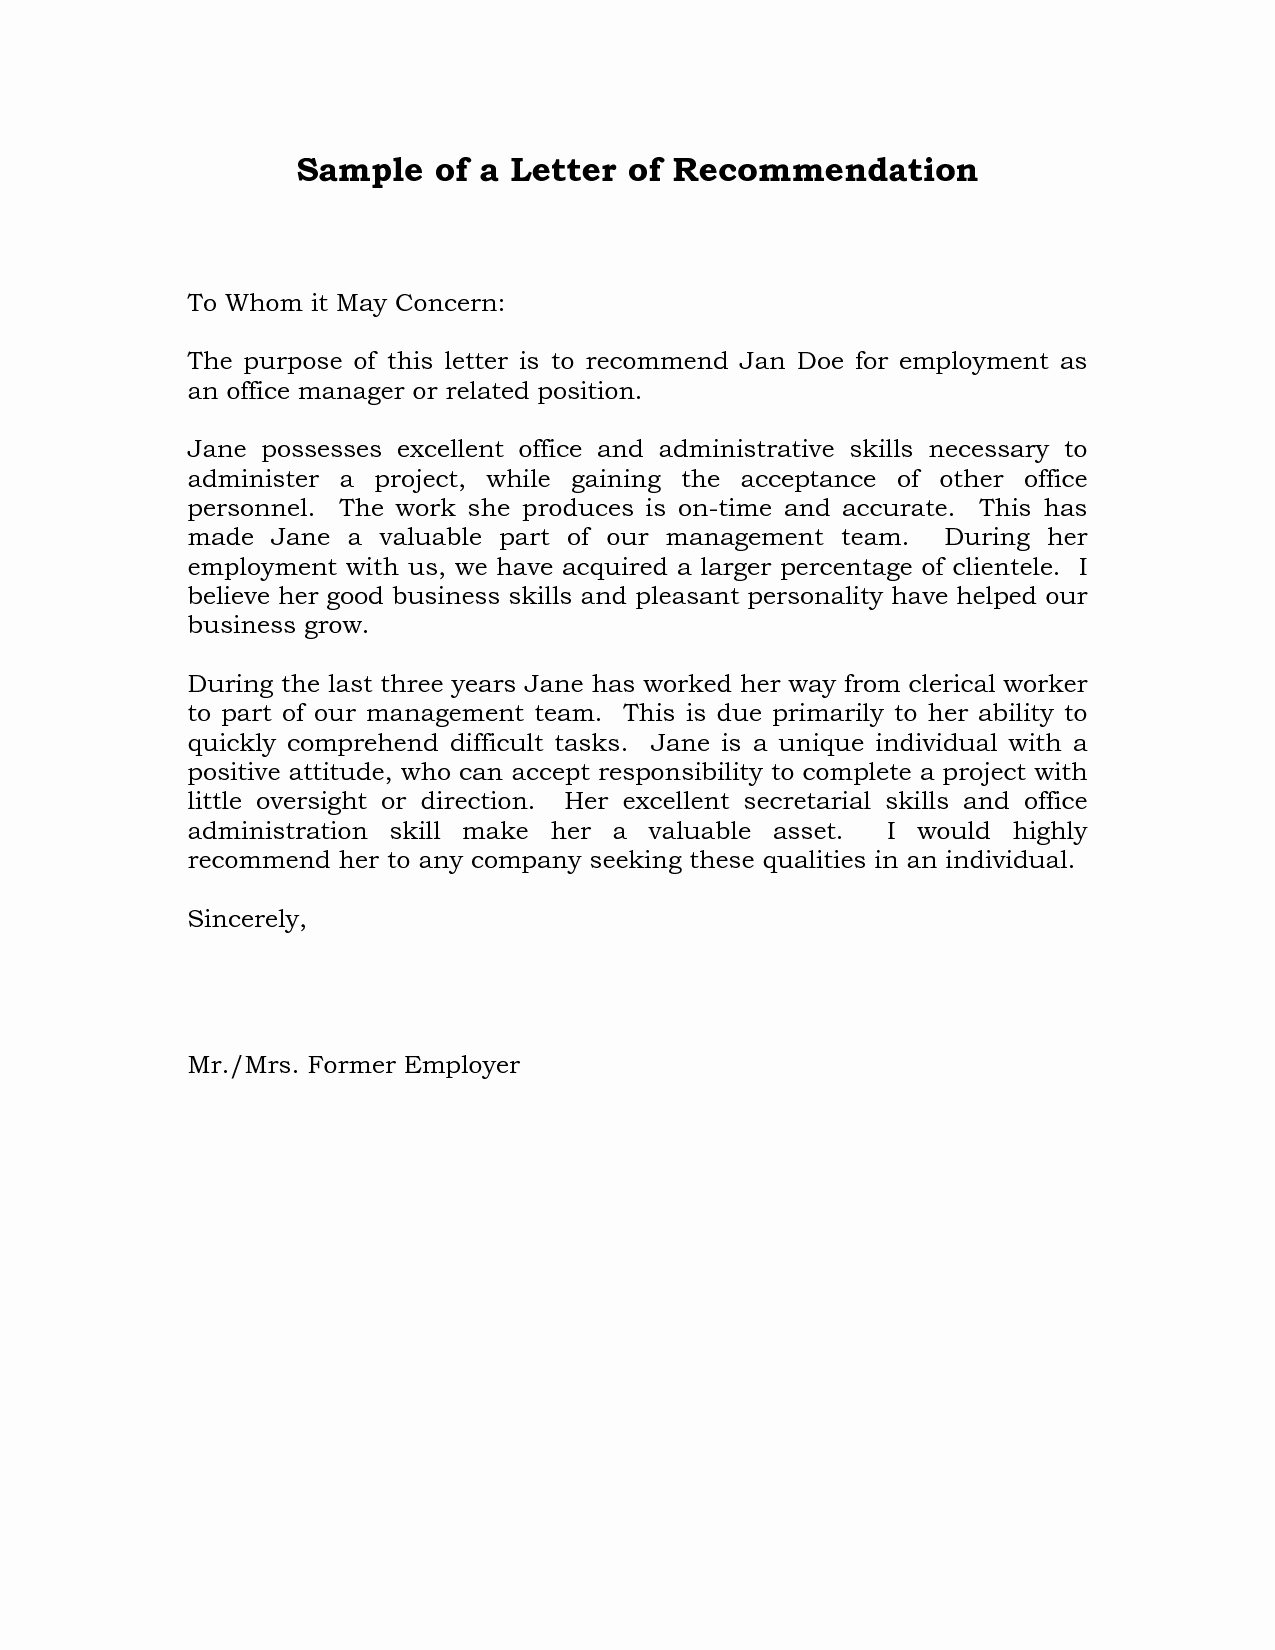 Letters Of Recommendation format Samples Luxury Letter Of Re Mendation Examples Sample & Templates